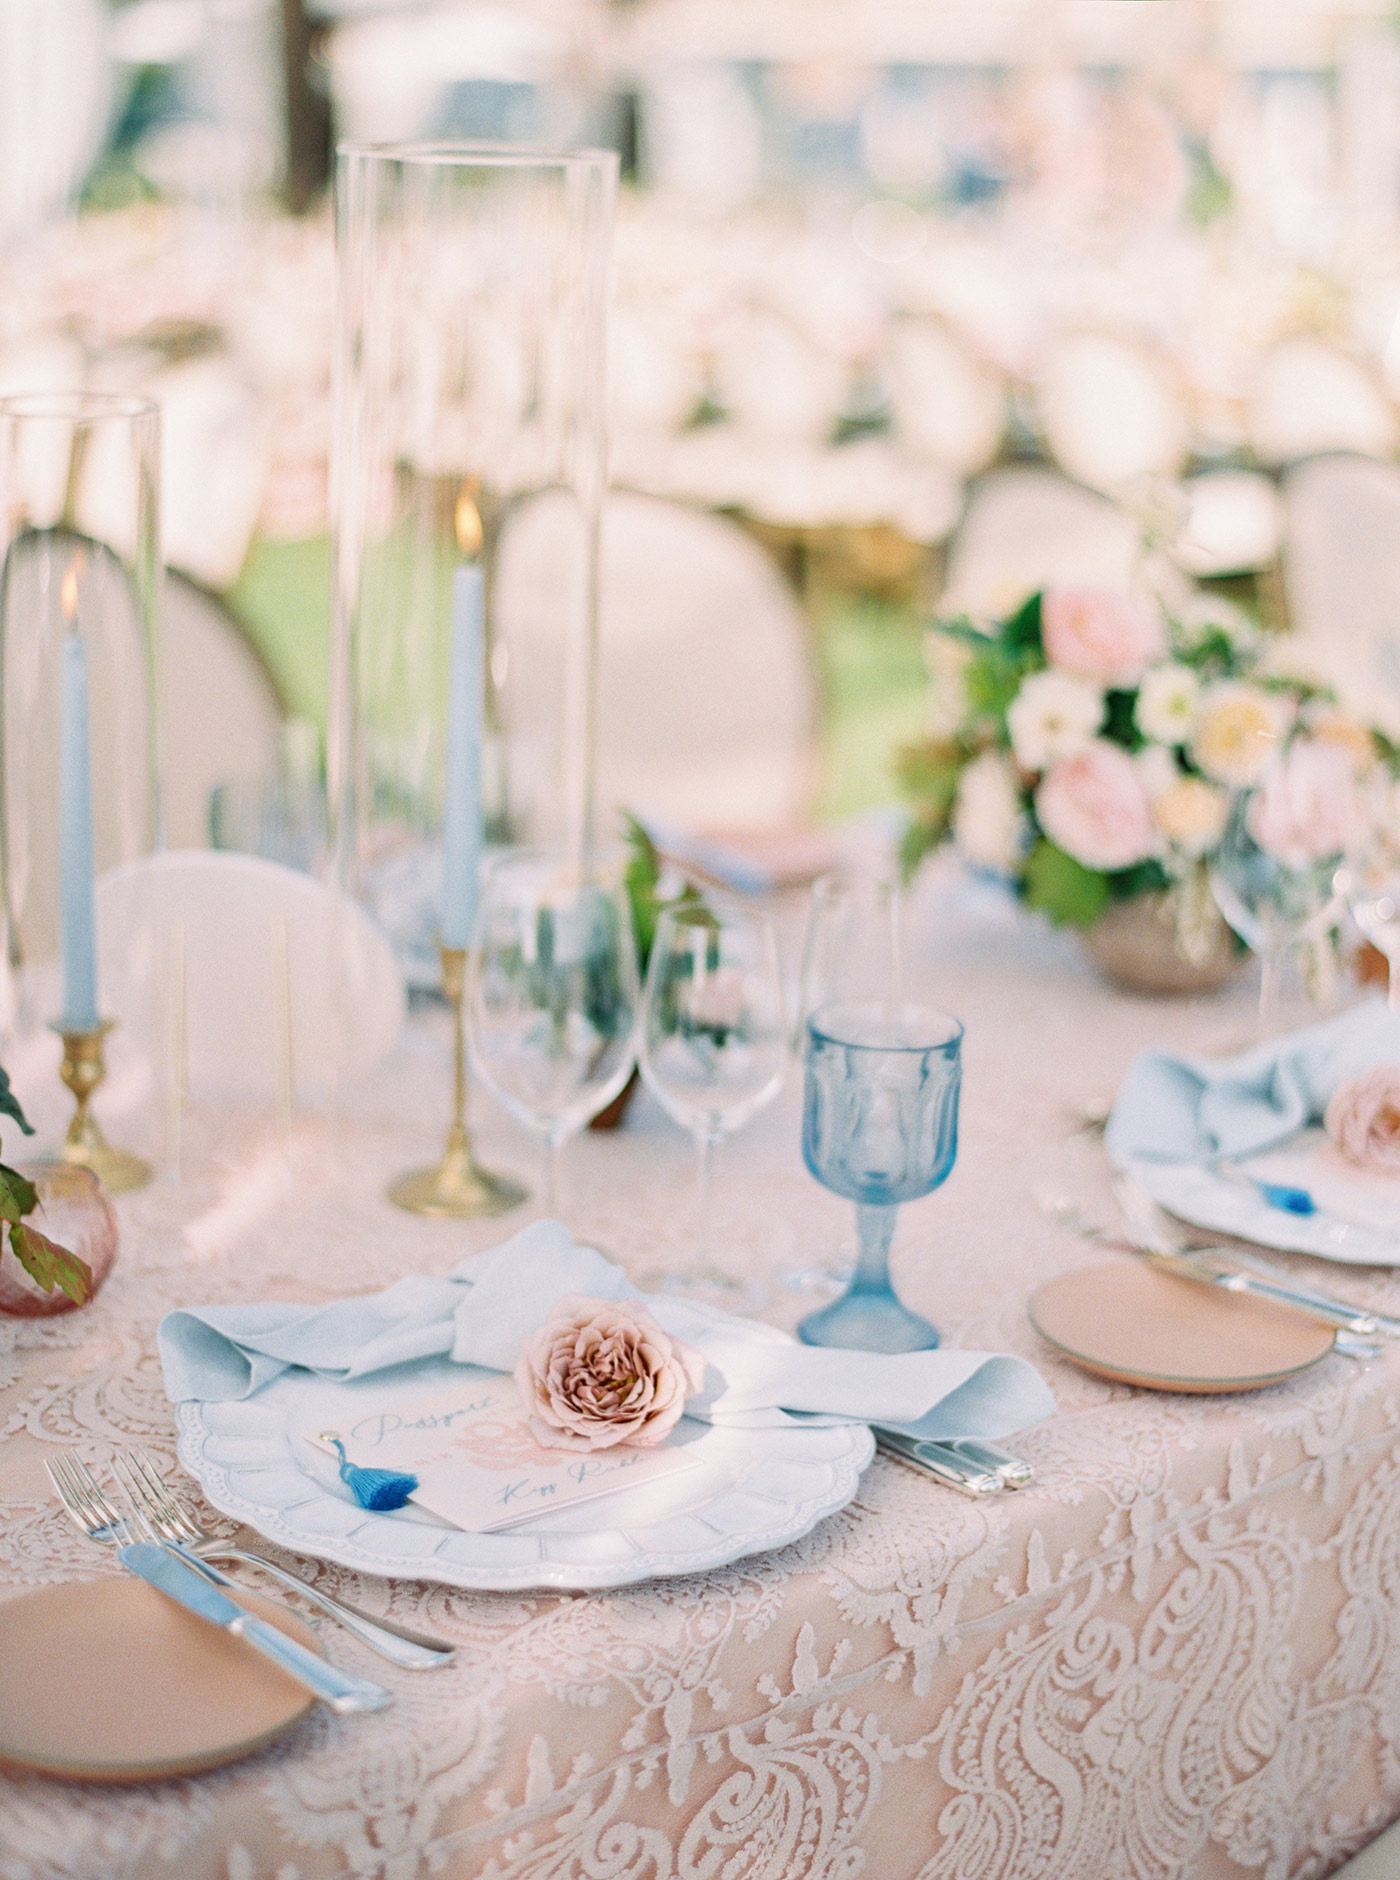 mykaela and brendon wedding blue and pink place setting